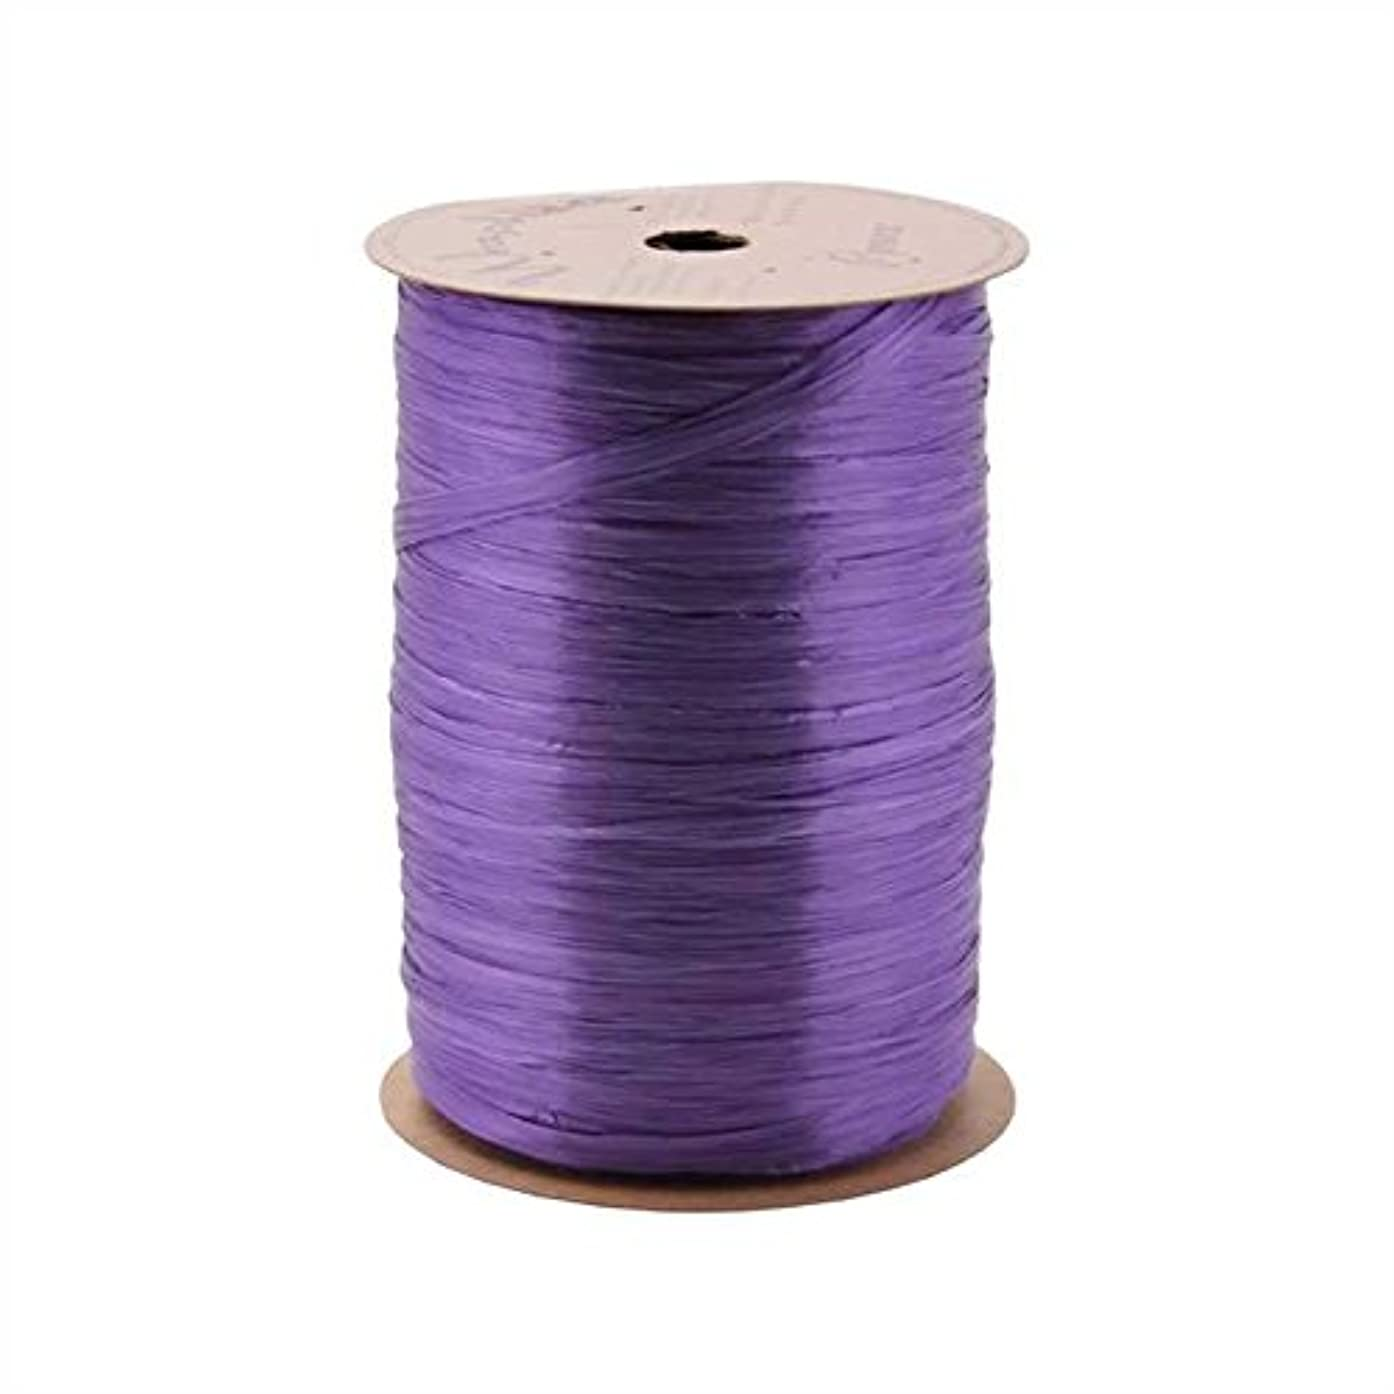 Berwick Offray Violet Purple Pearlized Raffia Ribbon, 1/4'' Wide, 100 Yards